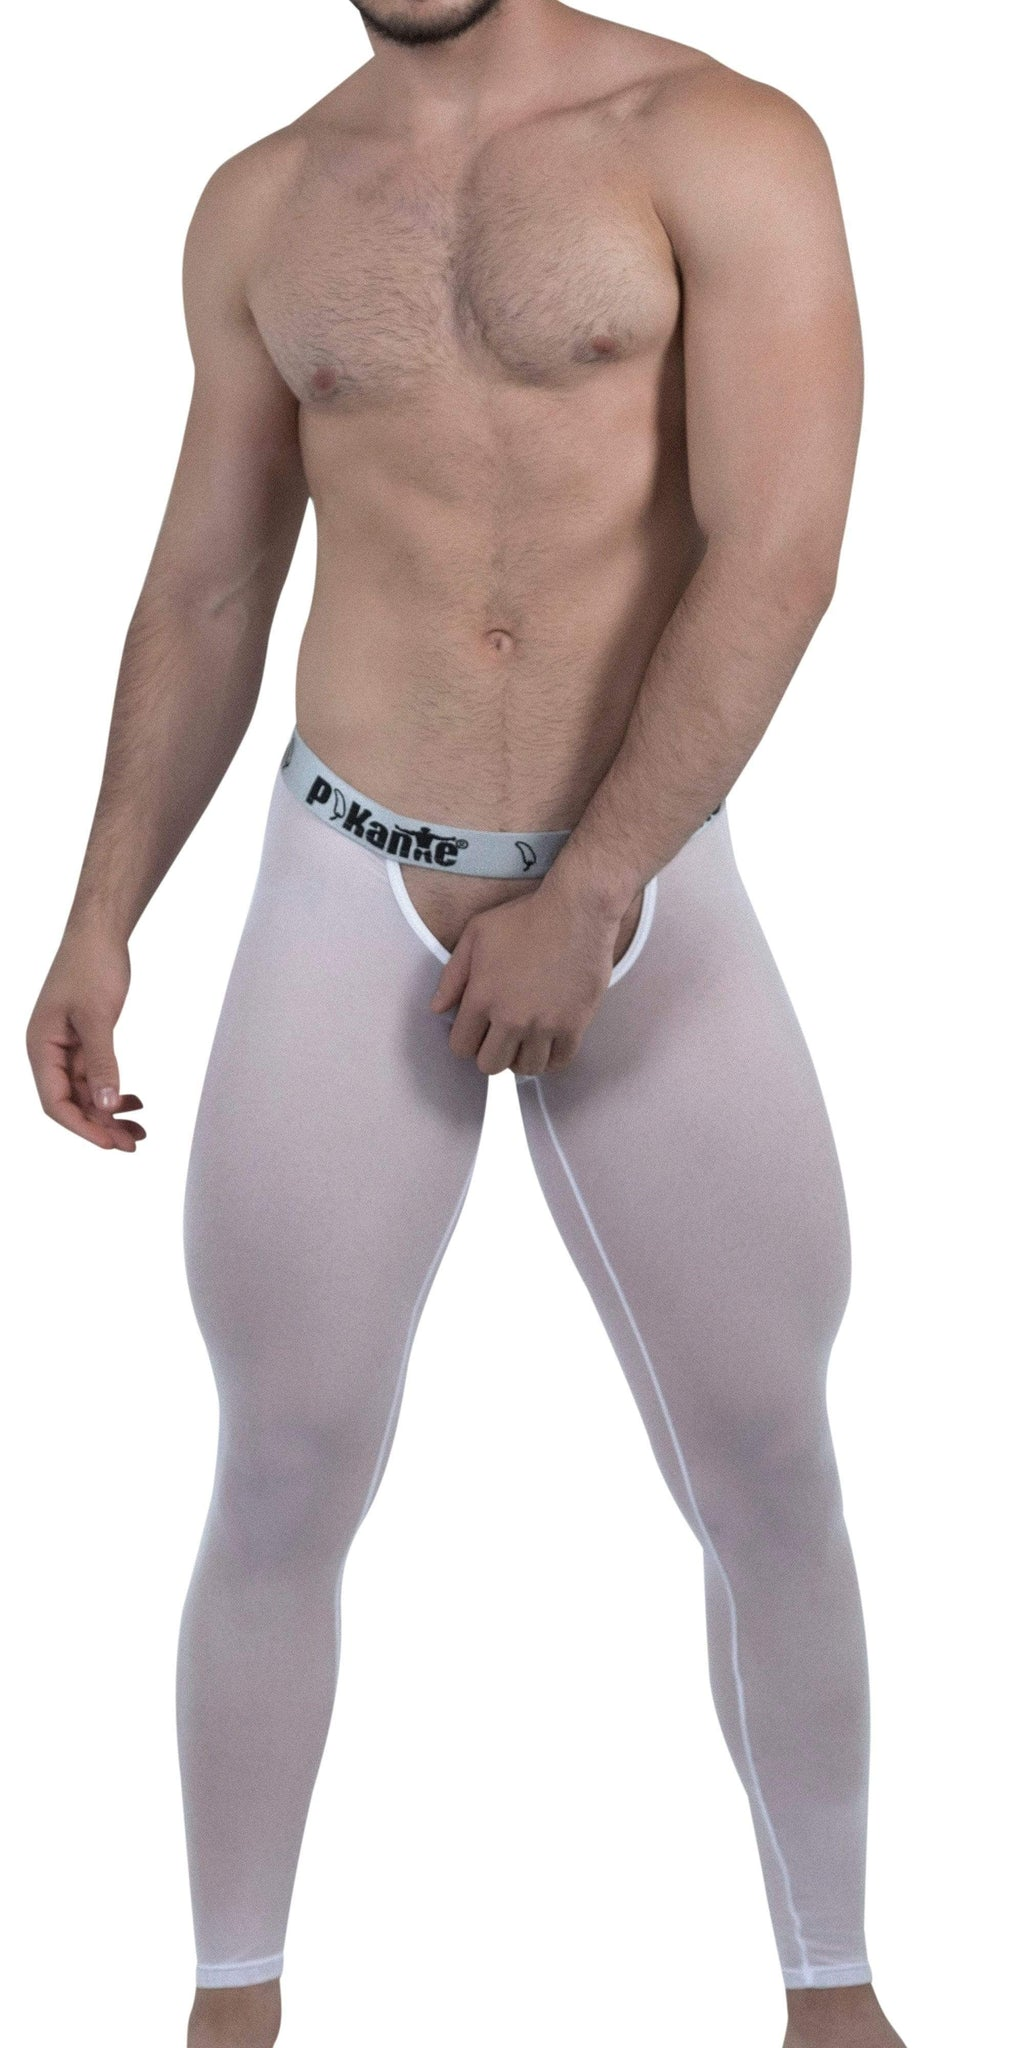 Pikante Underwear Soho Long Johns In White